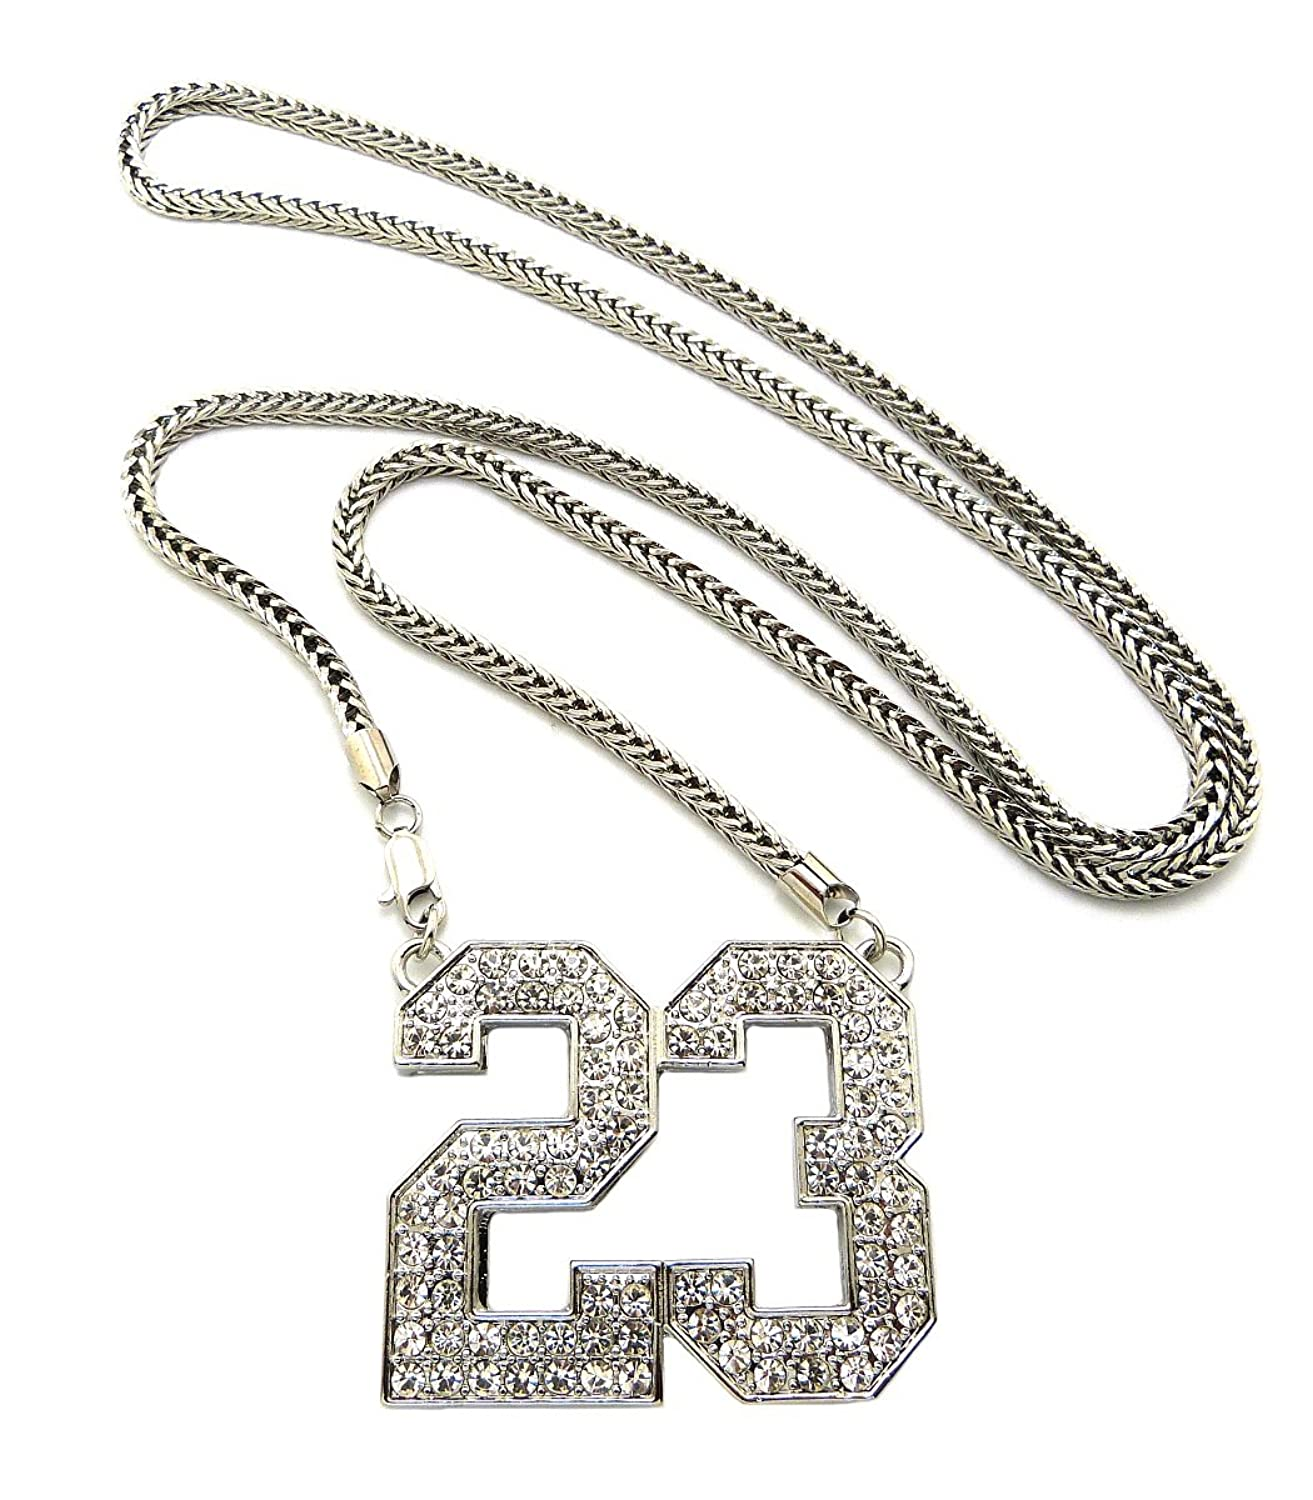 Amazon new iced out number 23 pendant 4mm36 franco chain hip amazon new iced out number 23 pendant 4mm36 franco chain hip hop necklace xp906r sports fan necklaces jewelry mozeypictures Choice Image